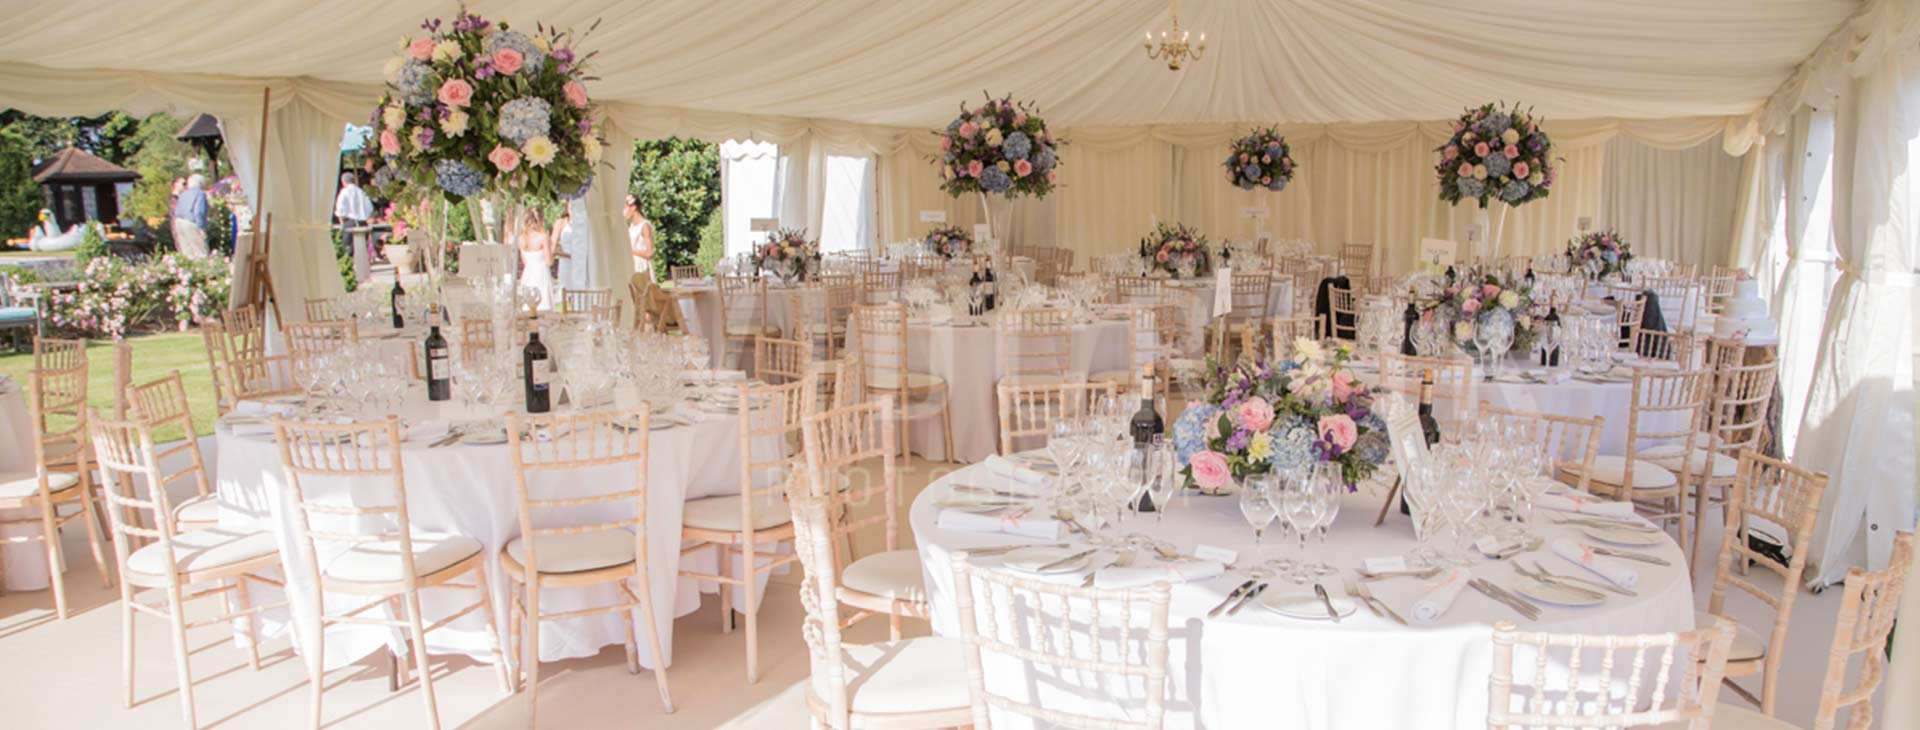 classic wedding setting in a marquee